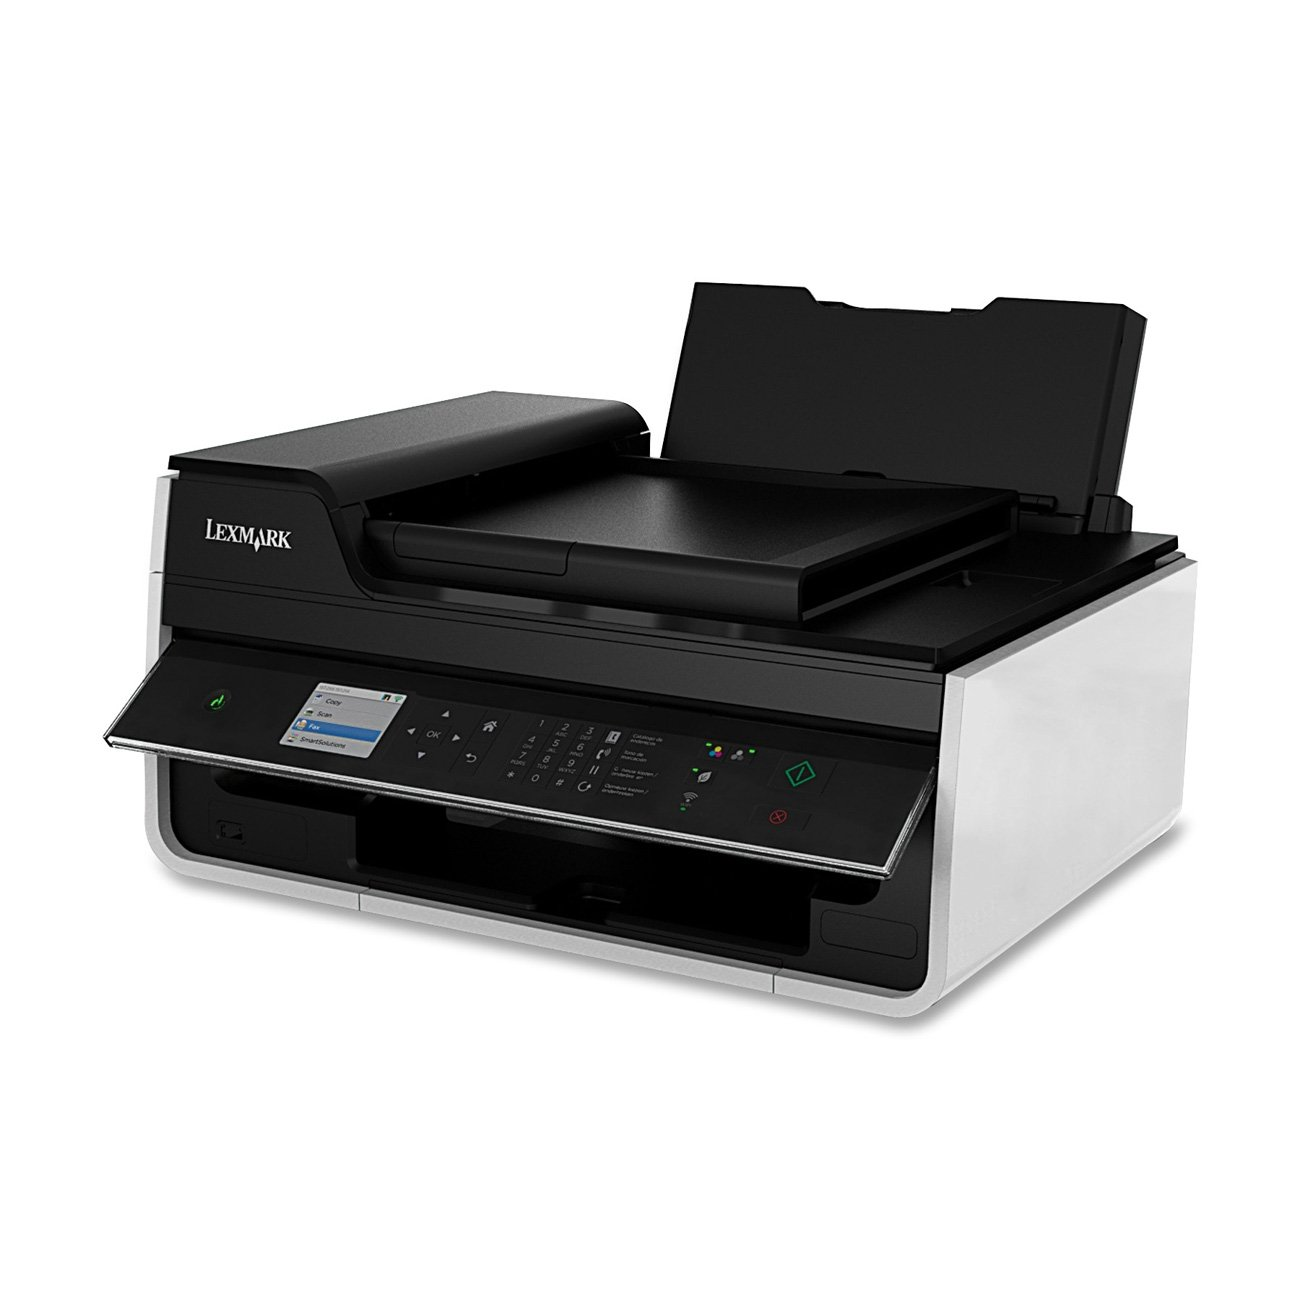 Lexmark 90T4110 S415 Wireless Color Photo Printer with Scanner, Copier & Fax